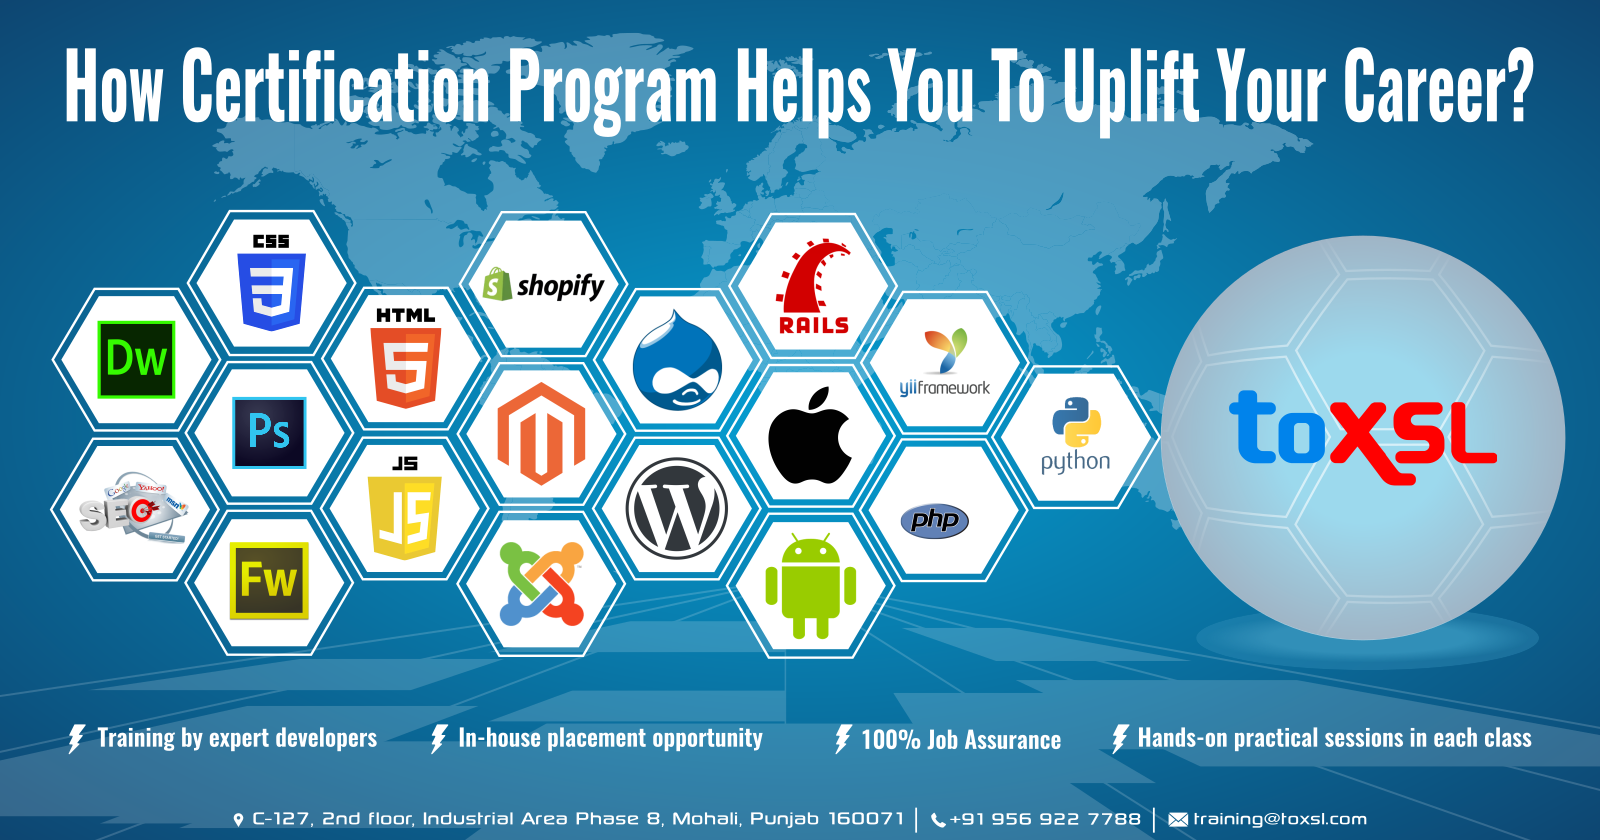 How Certification Program Helps You To Uplift Your Career?